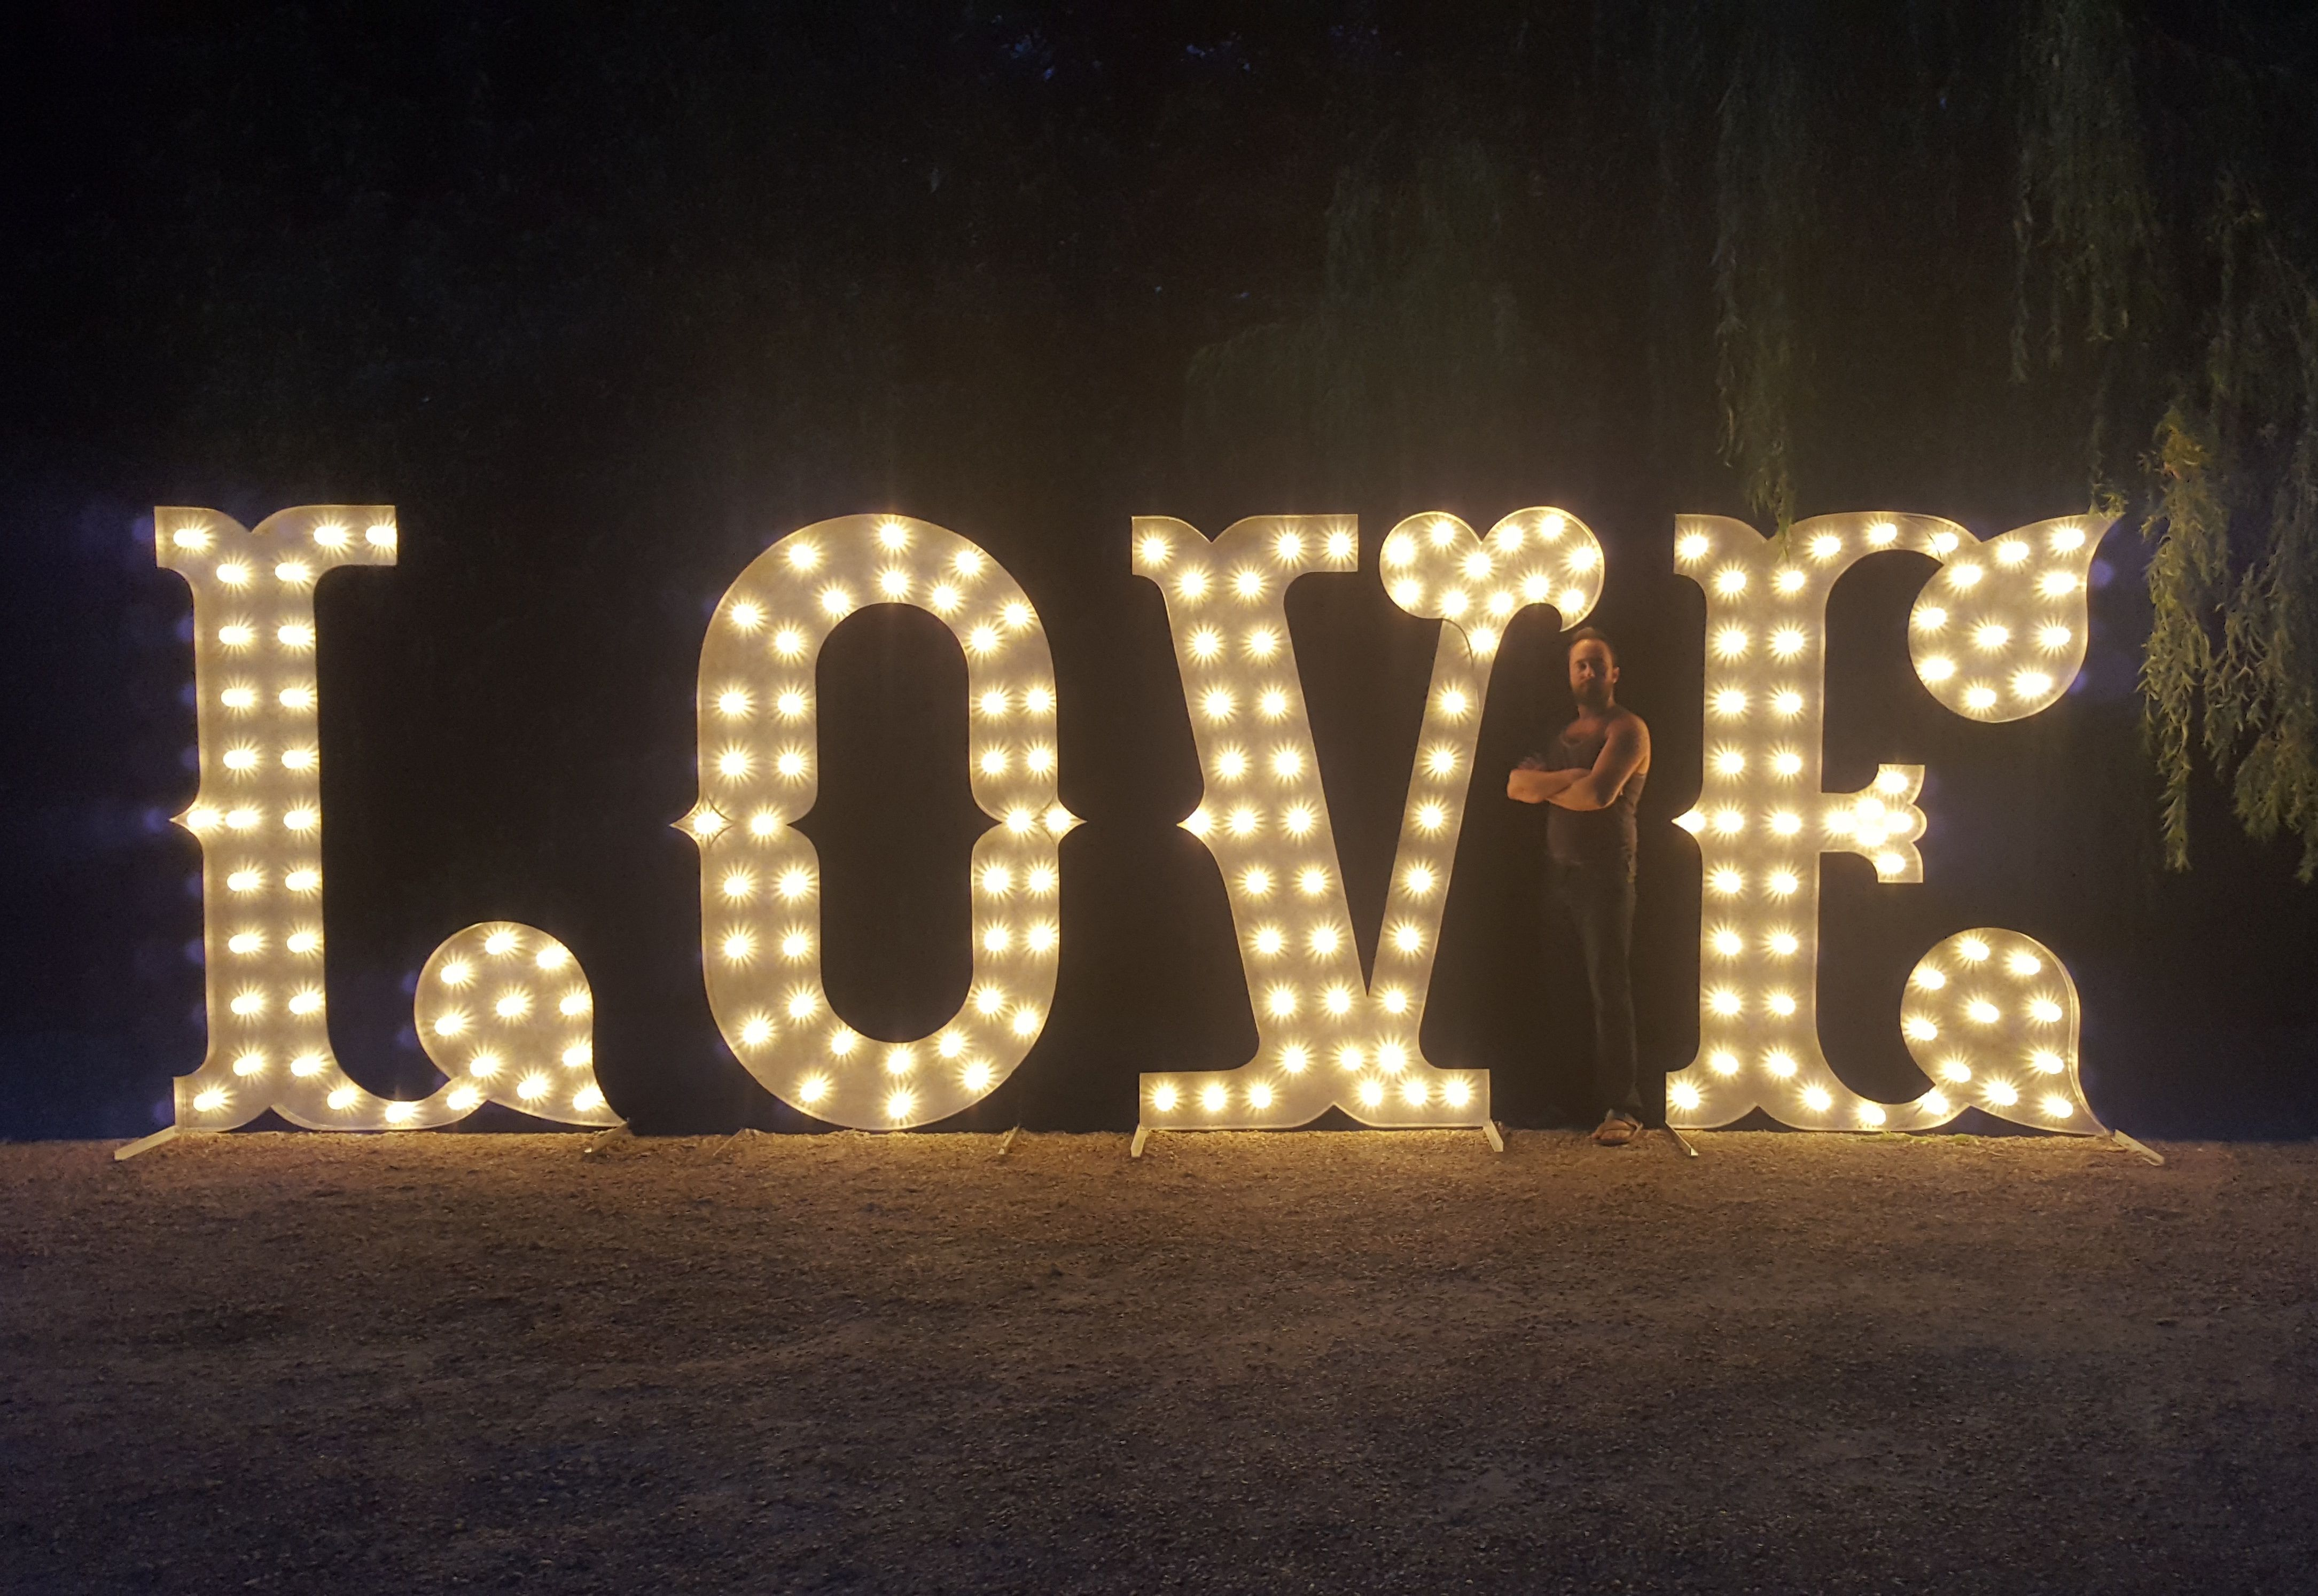 unique handmade giant 7ft tall love illuminated letter lights circus style